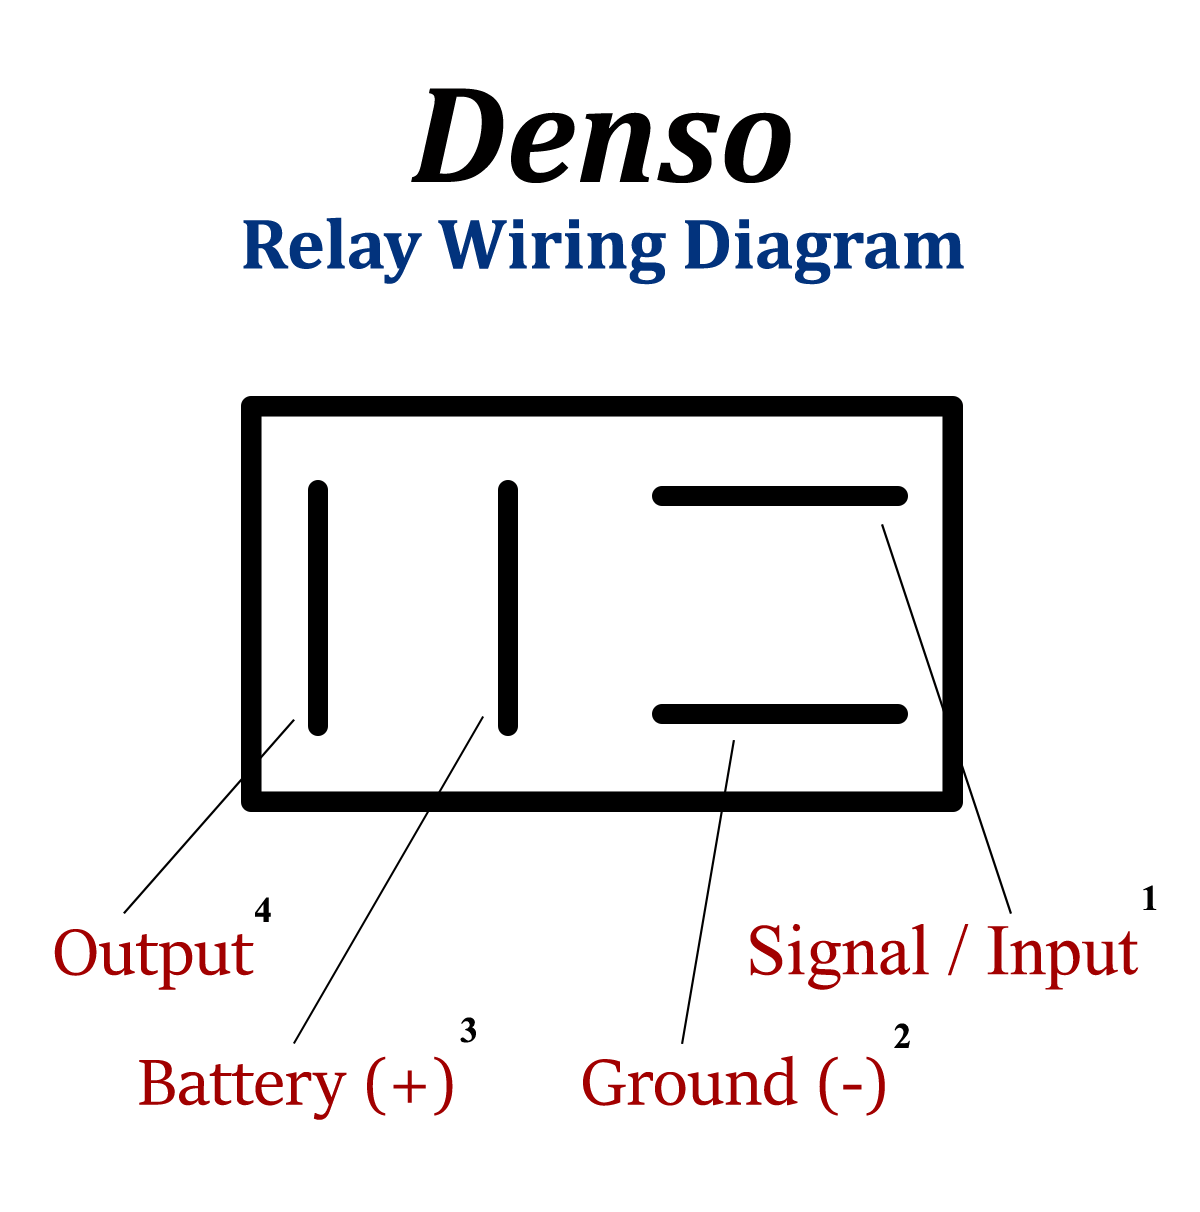 Wiring Diagram For Electric Motor With Capacitor in addition Weg Electric Motor Wiring Diagram moreover 5b5d487d1b630133d85fa7afb1ad469e also 230 Single Phase Wiring Diagram also Ac Motor Nameplate Data. on weg w22 motor wiring diagram